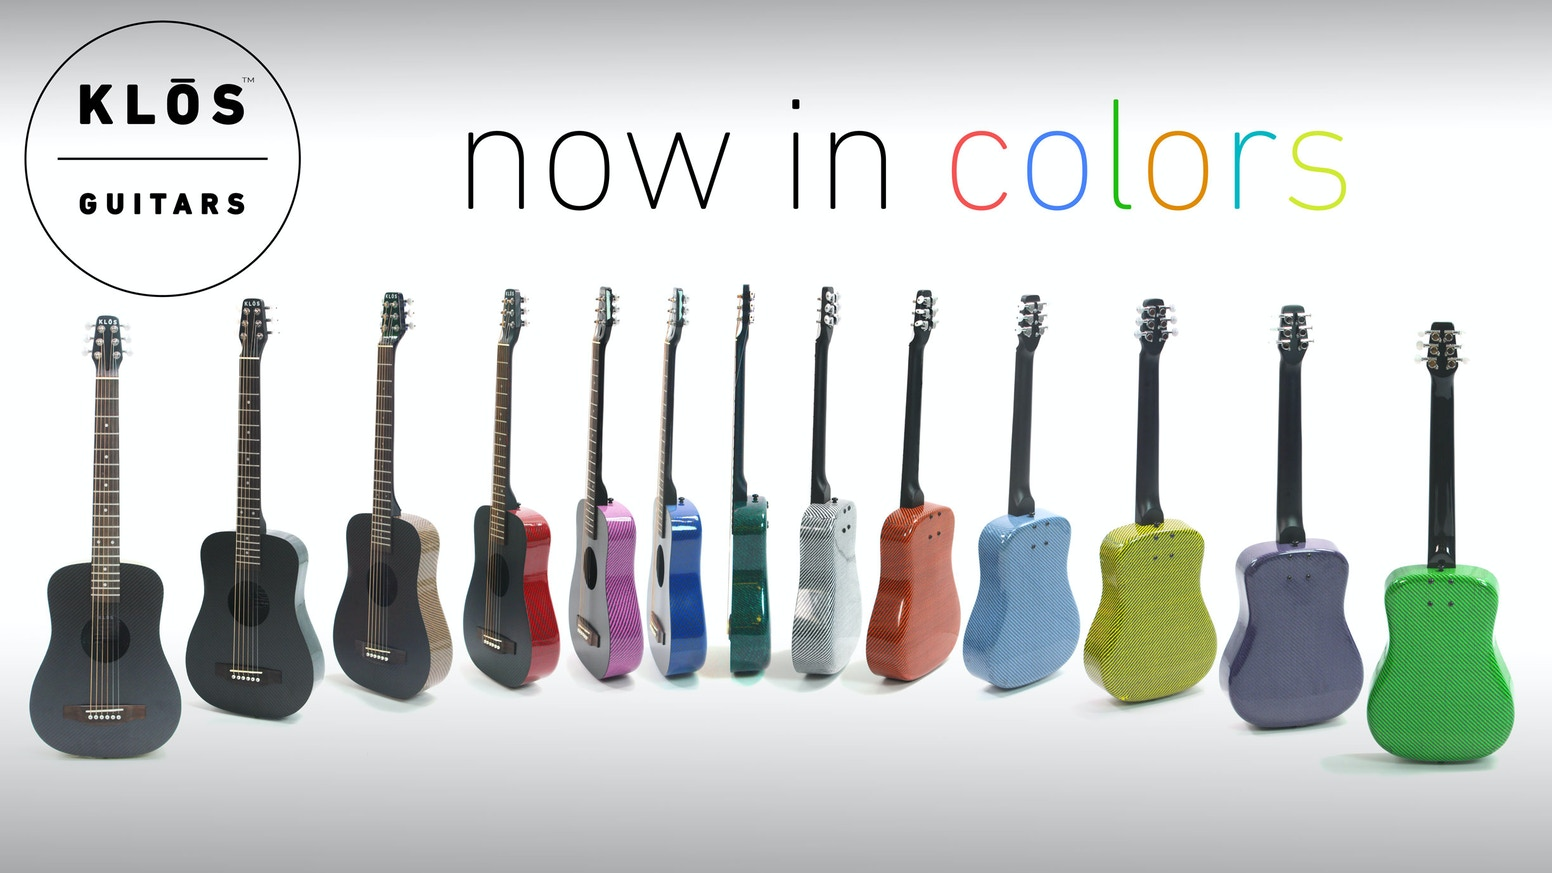 KLOS Guitars is back on Kickstarter, now with over 10 different colors!